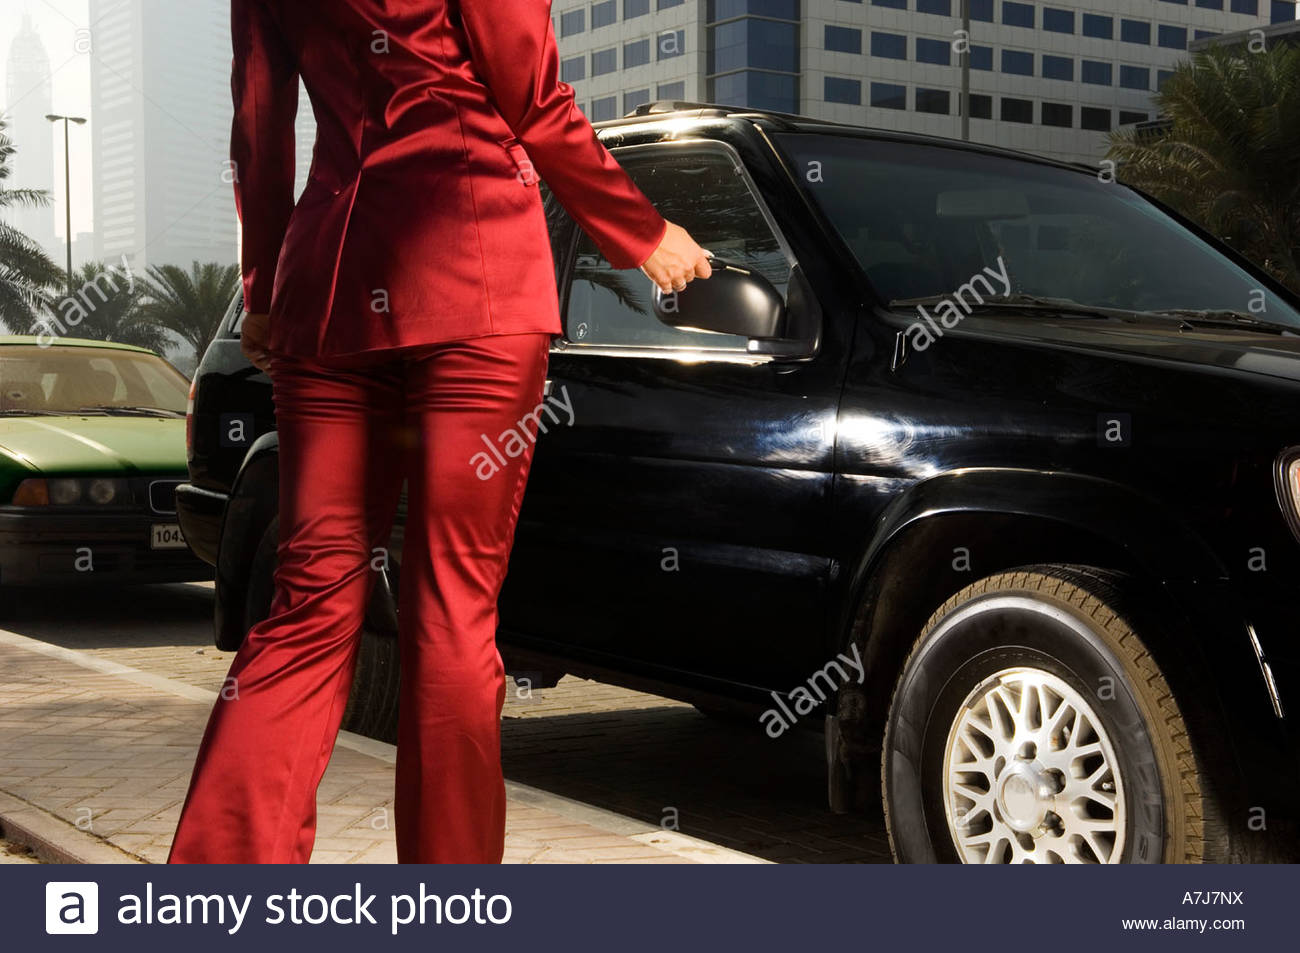 A businesswoman parking her car - Stock Image